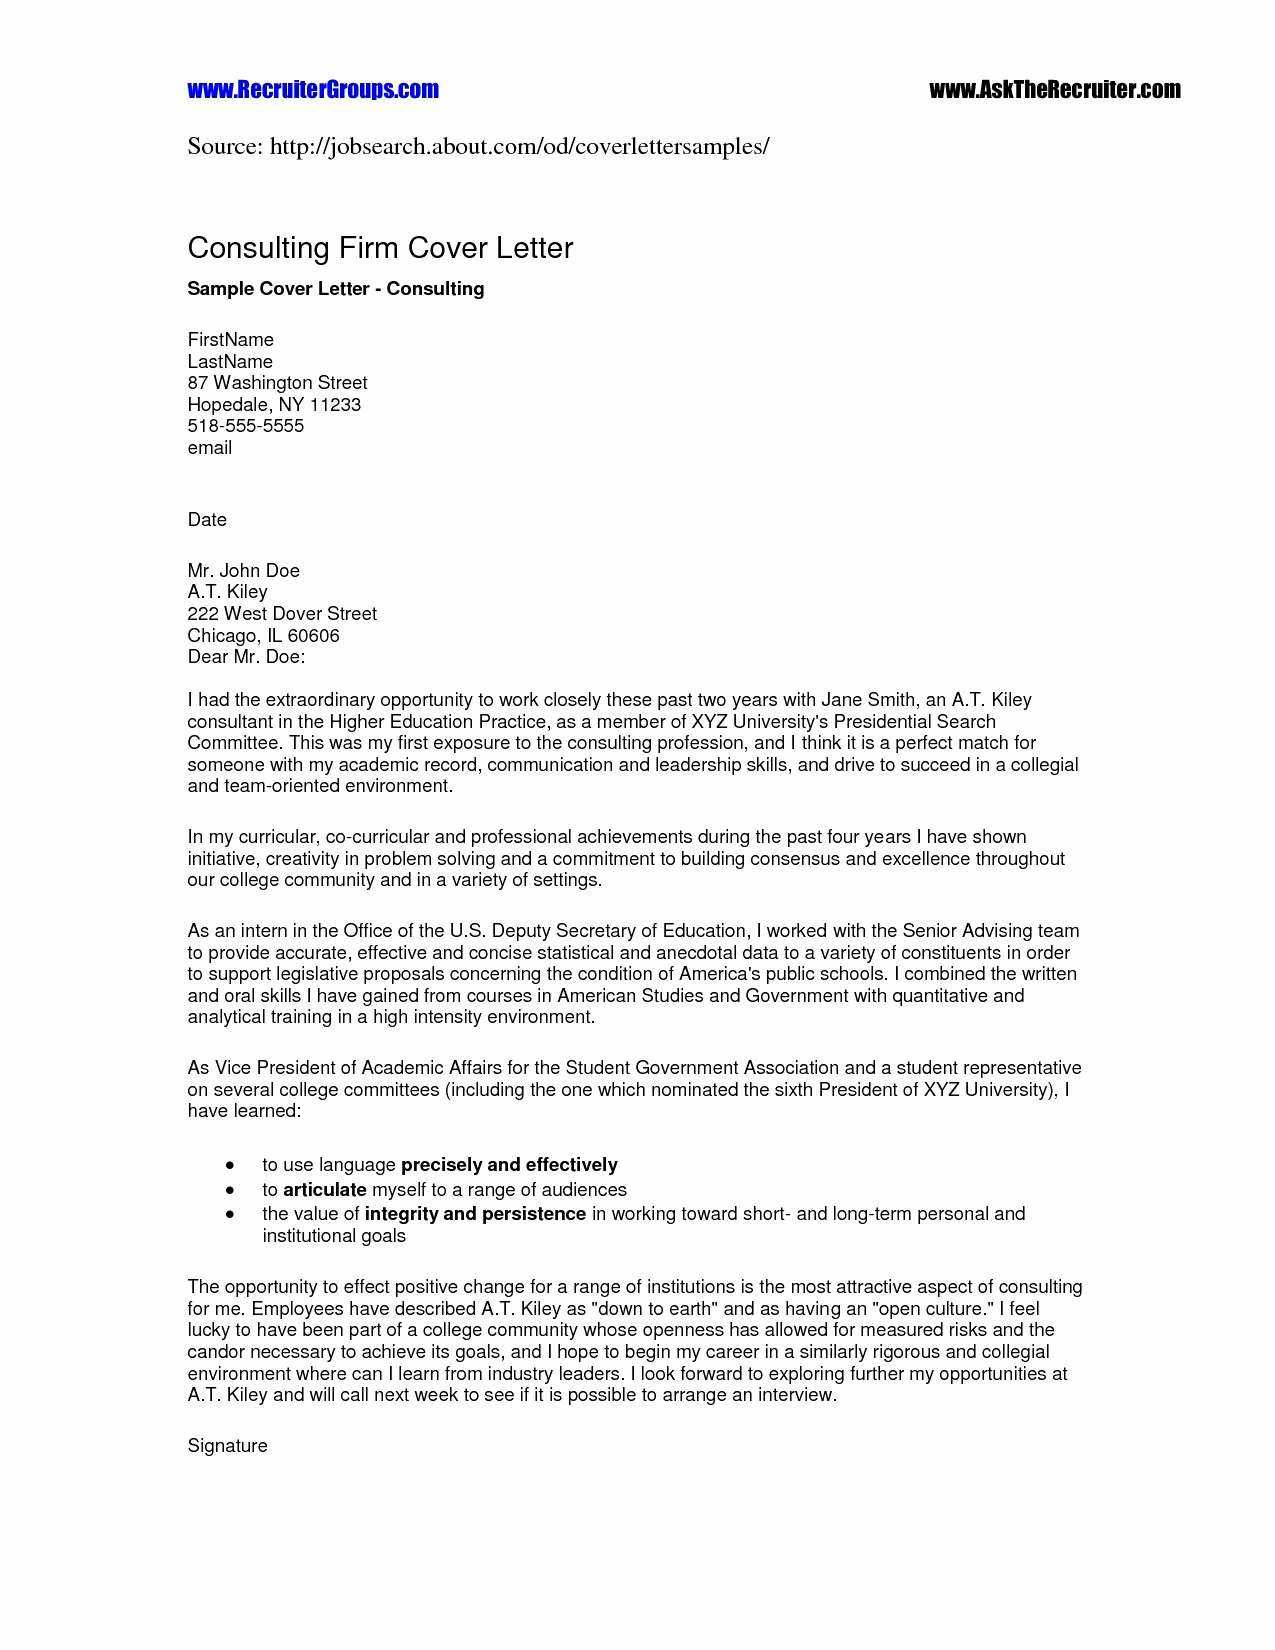 Resume and Cover Letter Template Microsoft Word - Teacher Resume Templates Microsoft Word 2007 Fresh Modern Resume